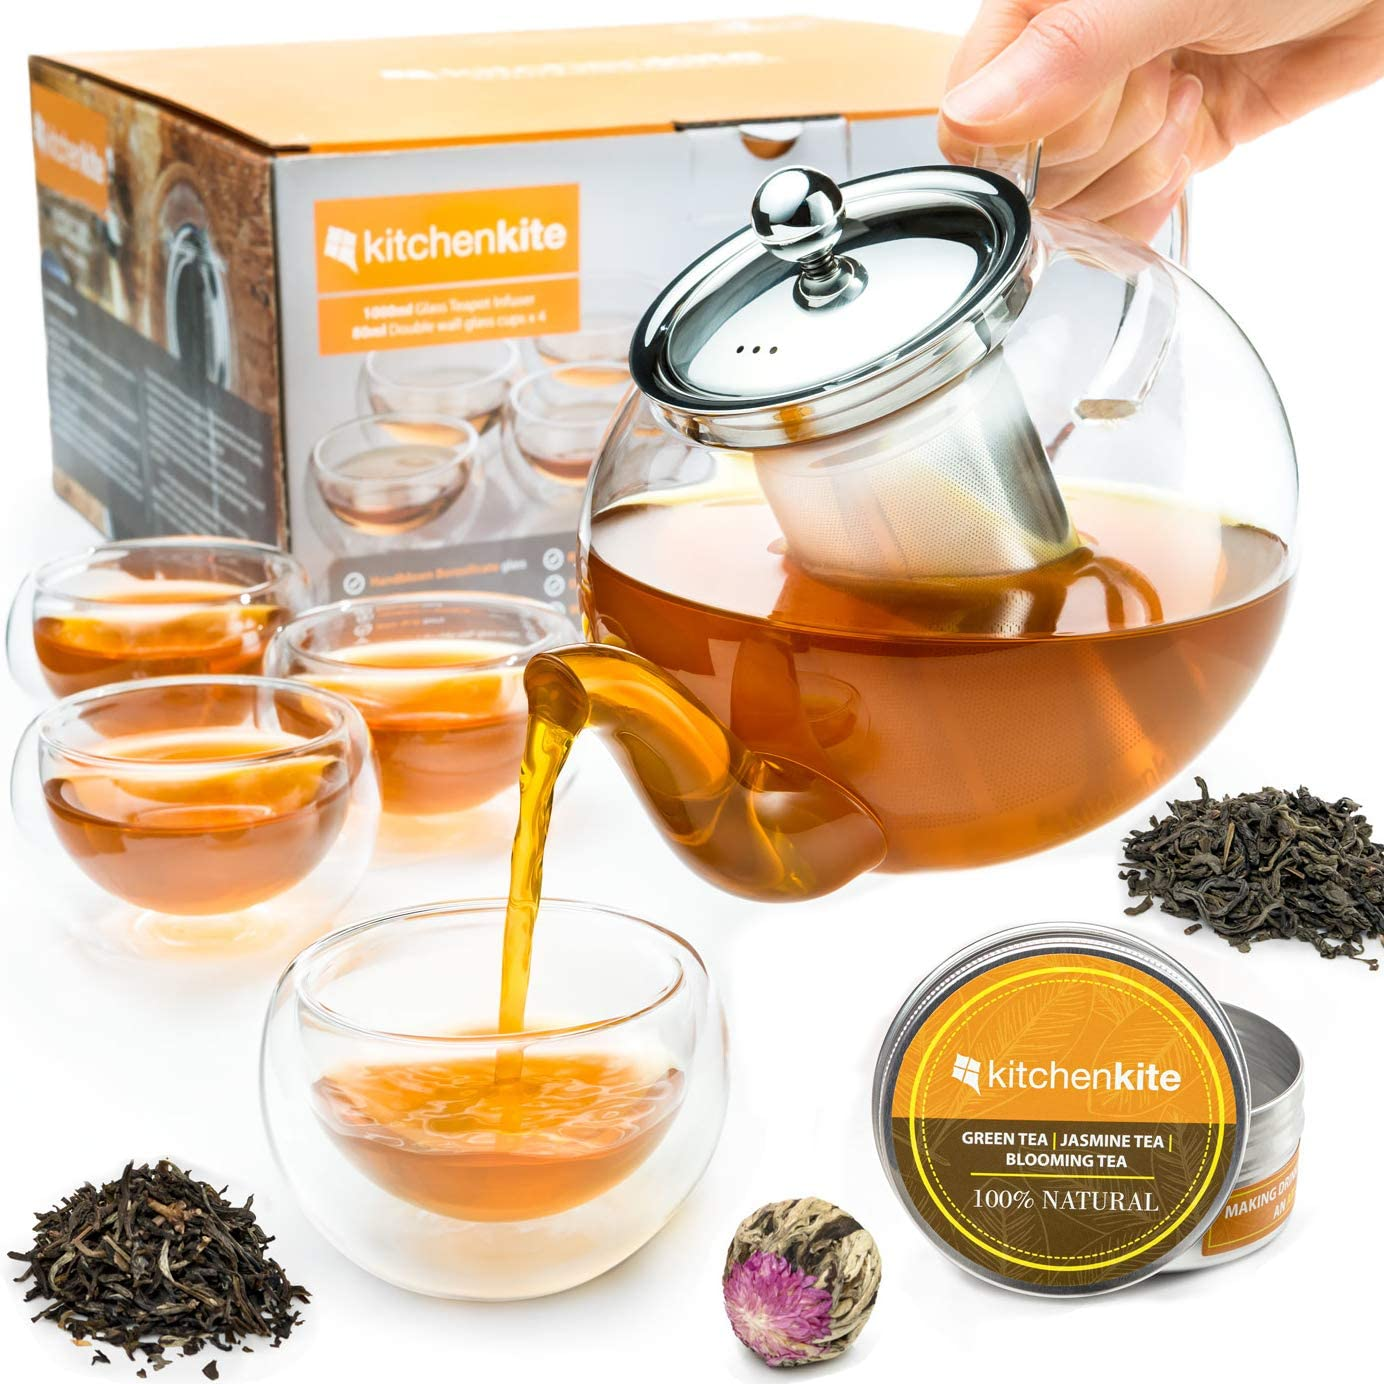 Tea Kettle Infuser Stovetop Gift Set - Glass Teapot with Removable Stainless Steel Strainer, Microwave & Dishwasher Safe, Tea Pot with Blooming, Loose Leaf Tea